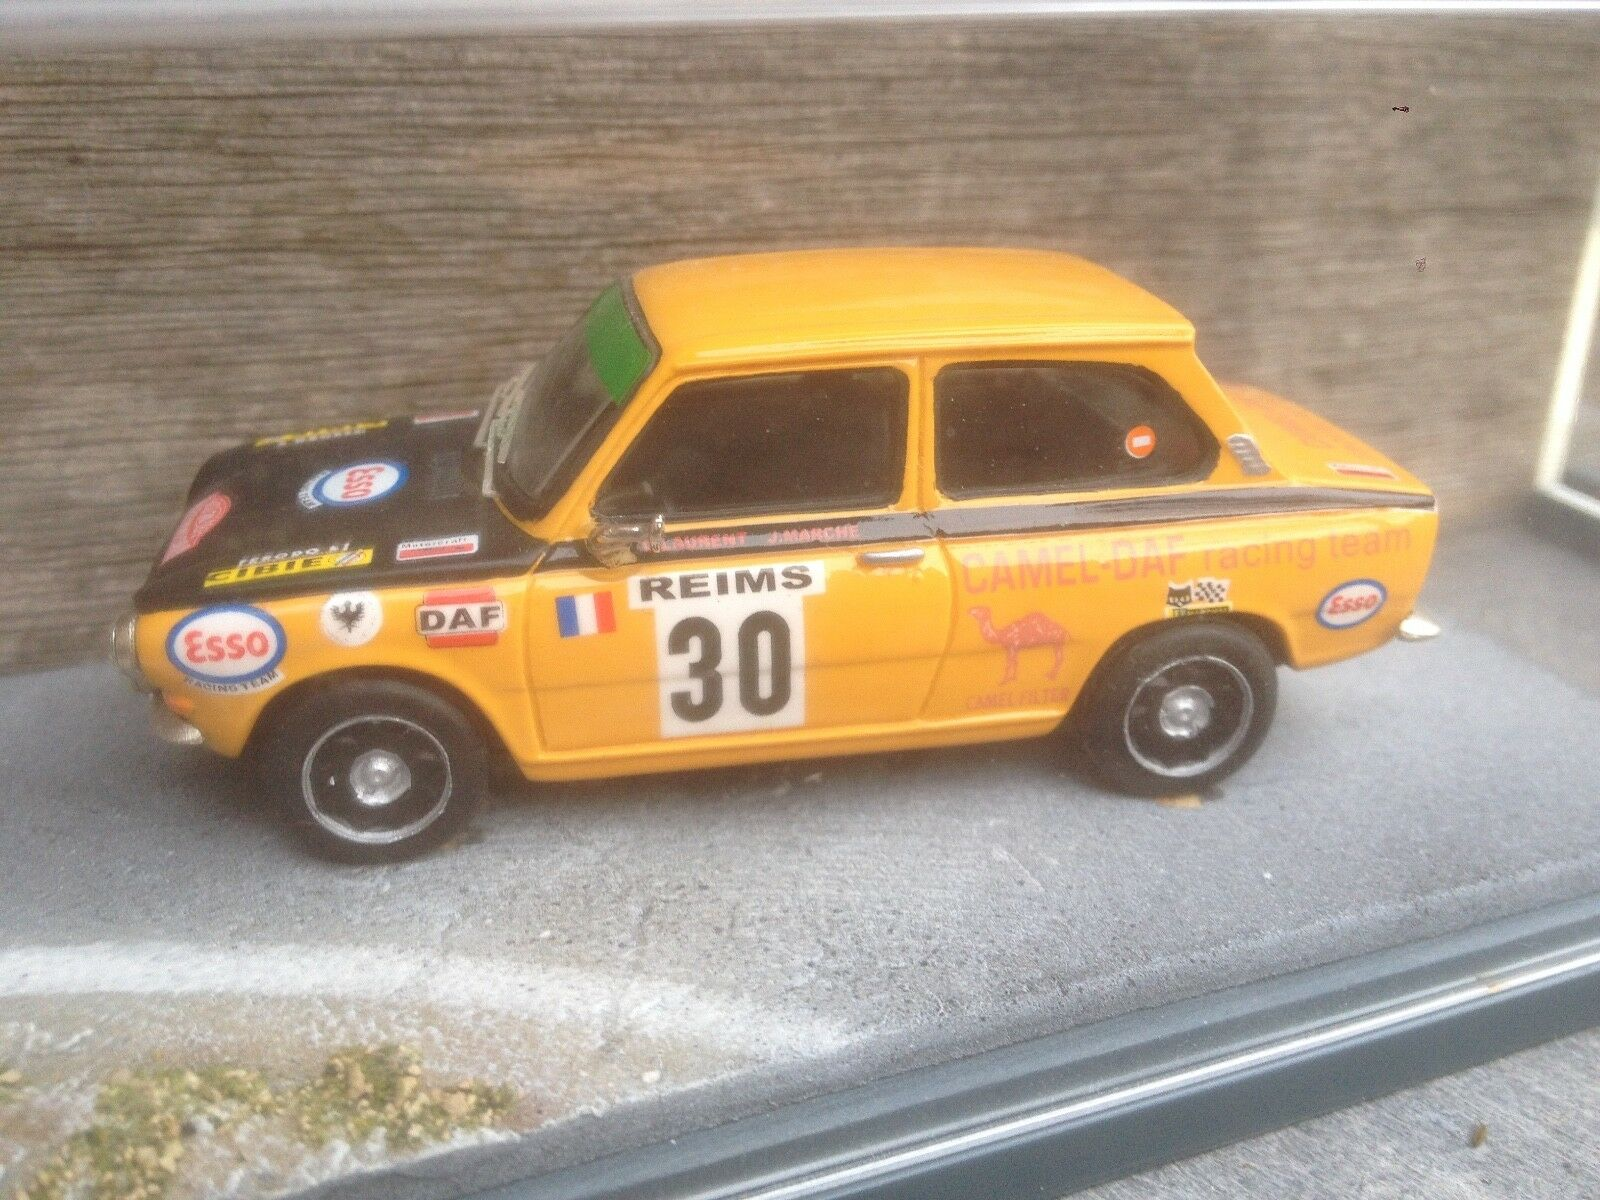 DAF 55 ARG RALLY MONTE-CARLO 1972 IN BBR BOX 1 43 BUILT KIT BERLINETTA MODELCARS